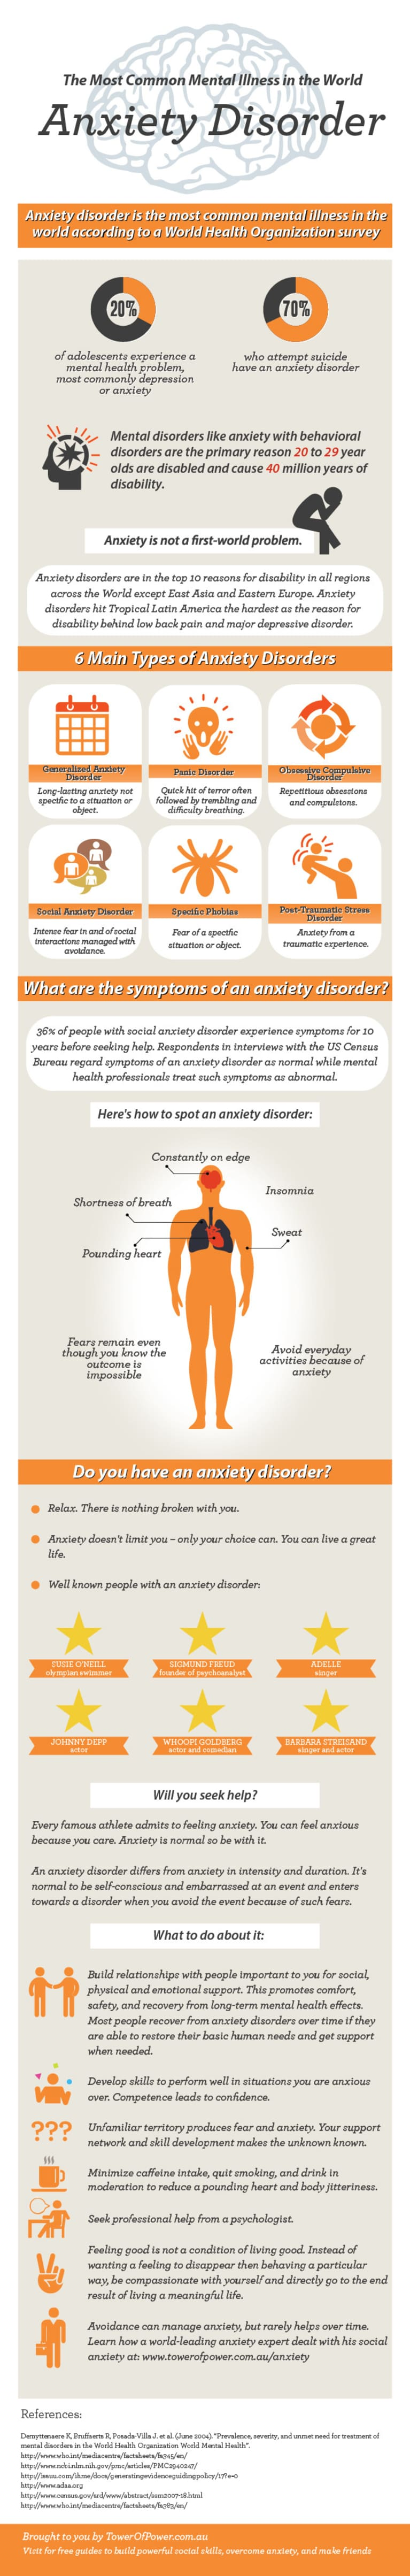 What You Should Know About Anxiety Disorders (Infographic)